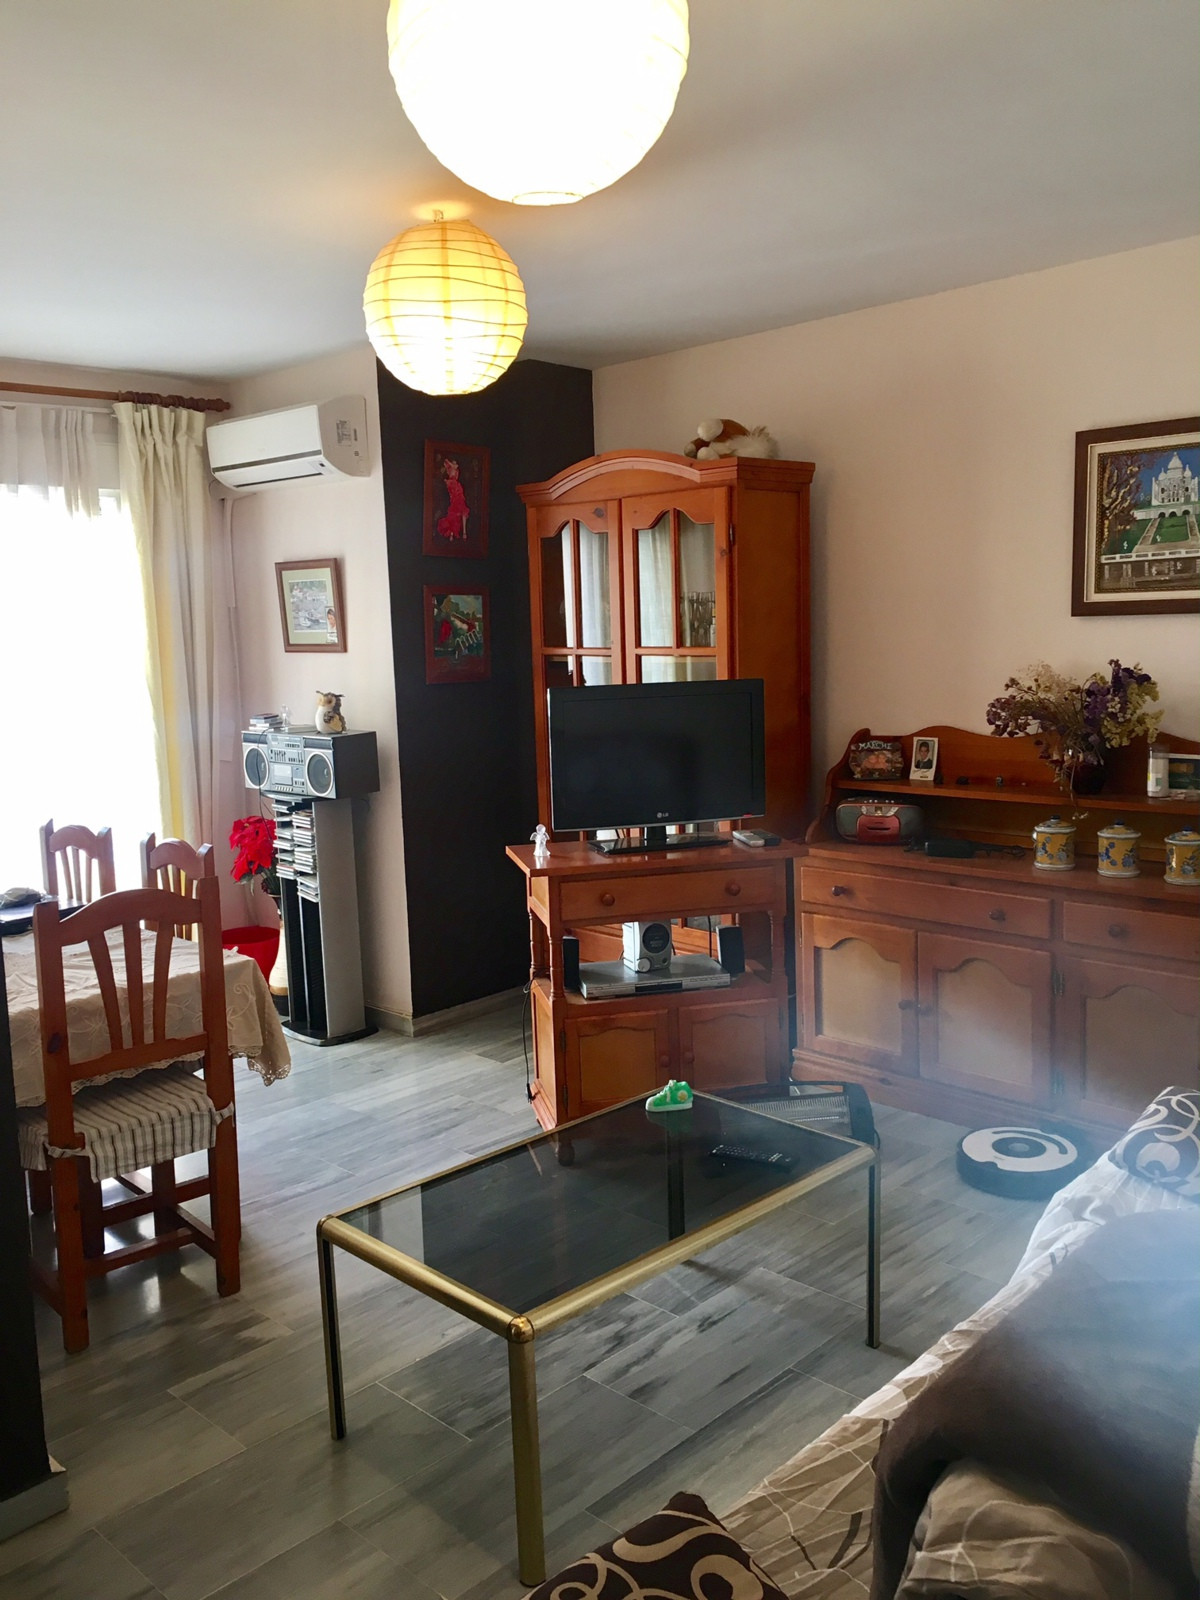 Studio in excellent condition on 1st floor: with large living room, fitted kitchen, bedroom with war,Spain